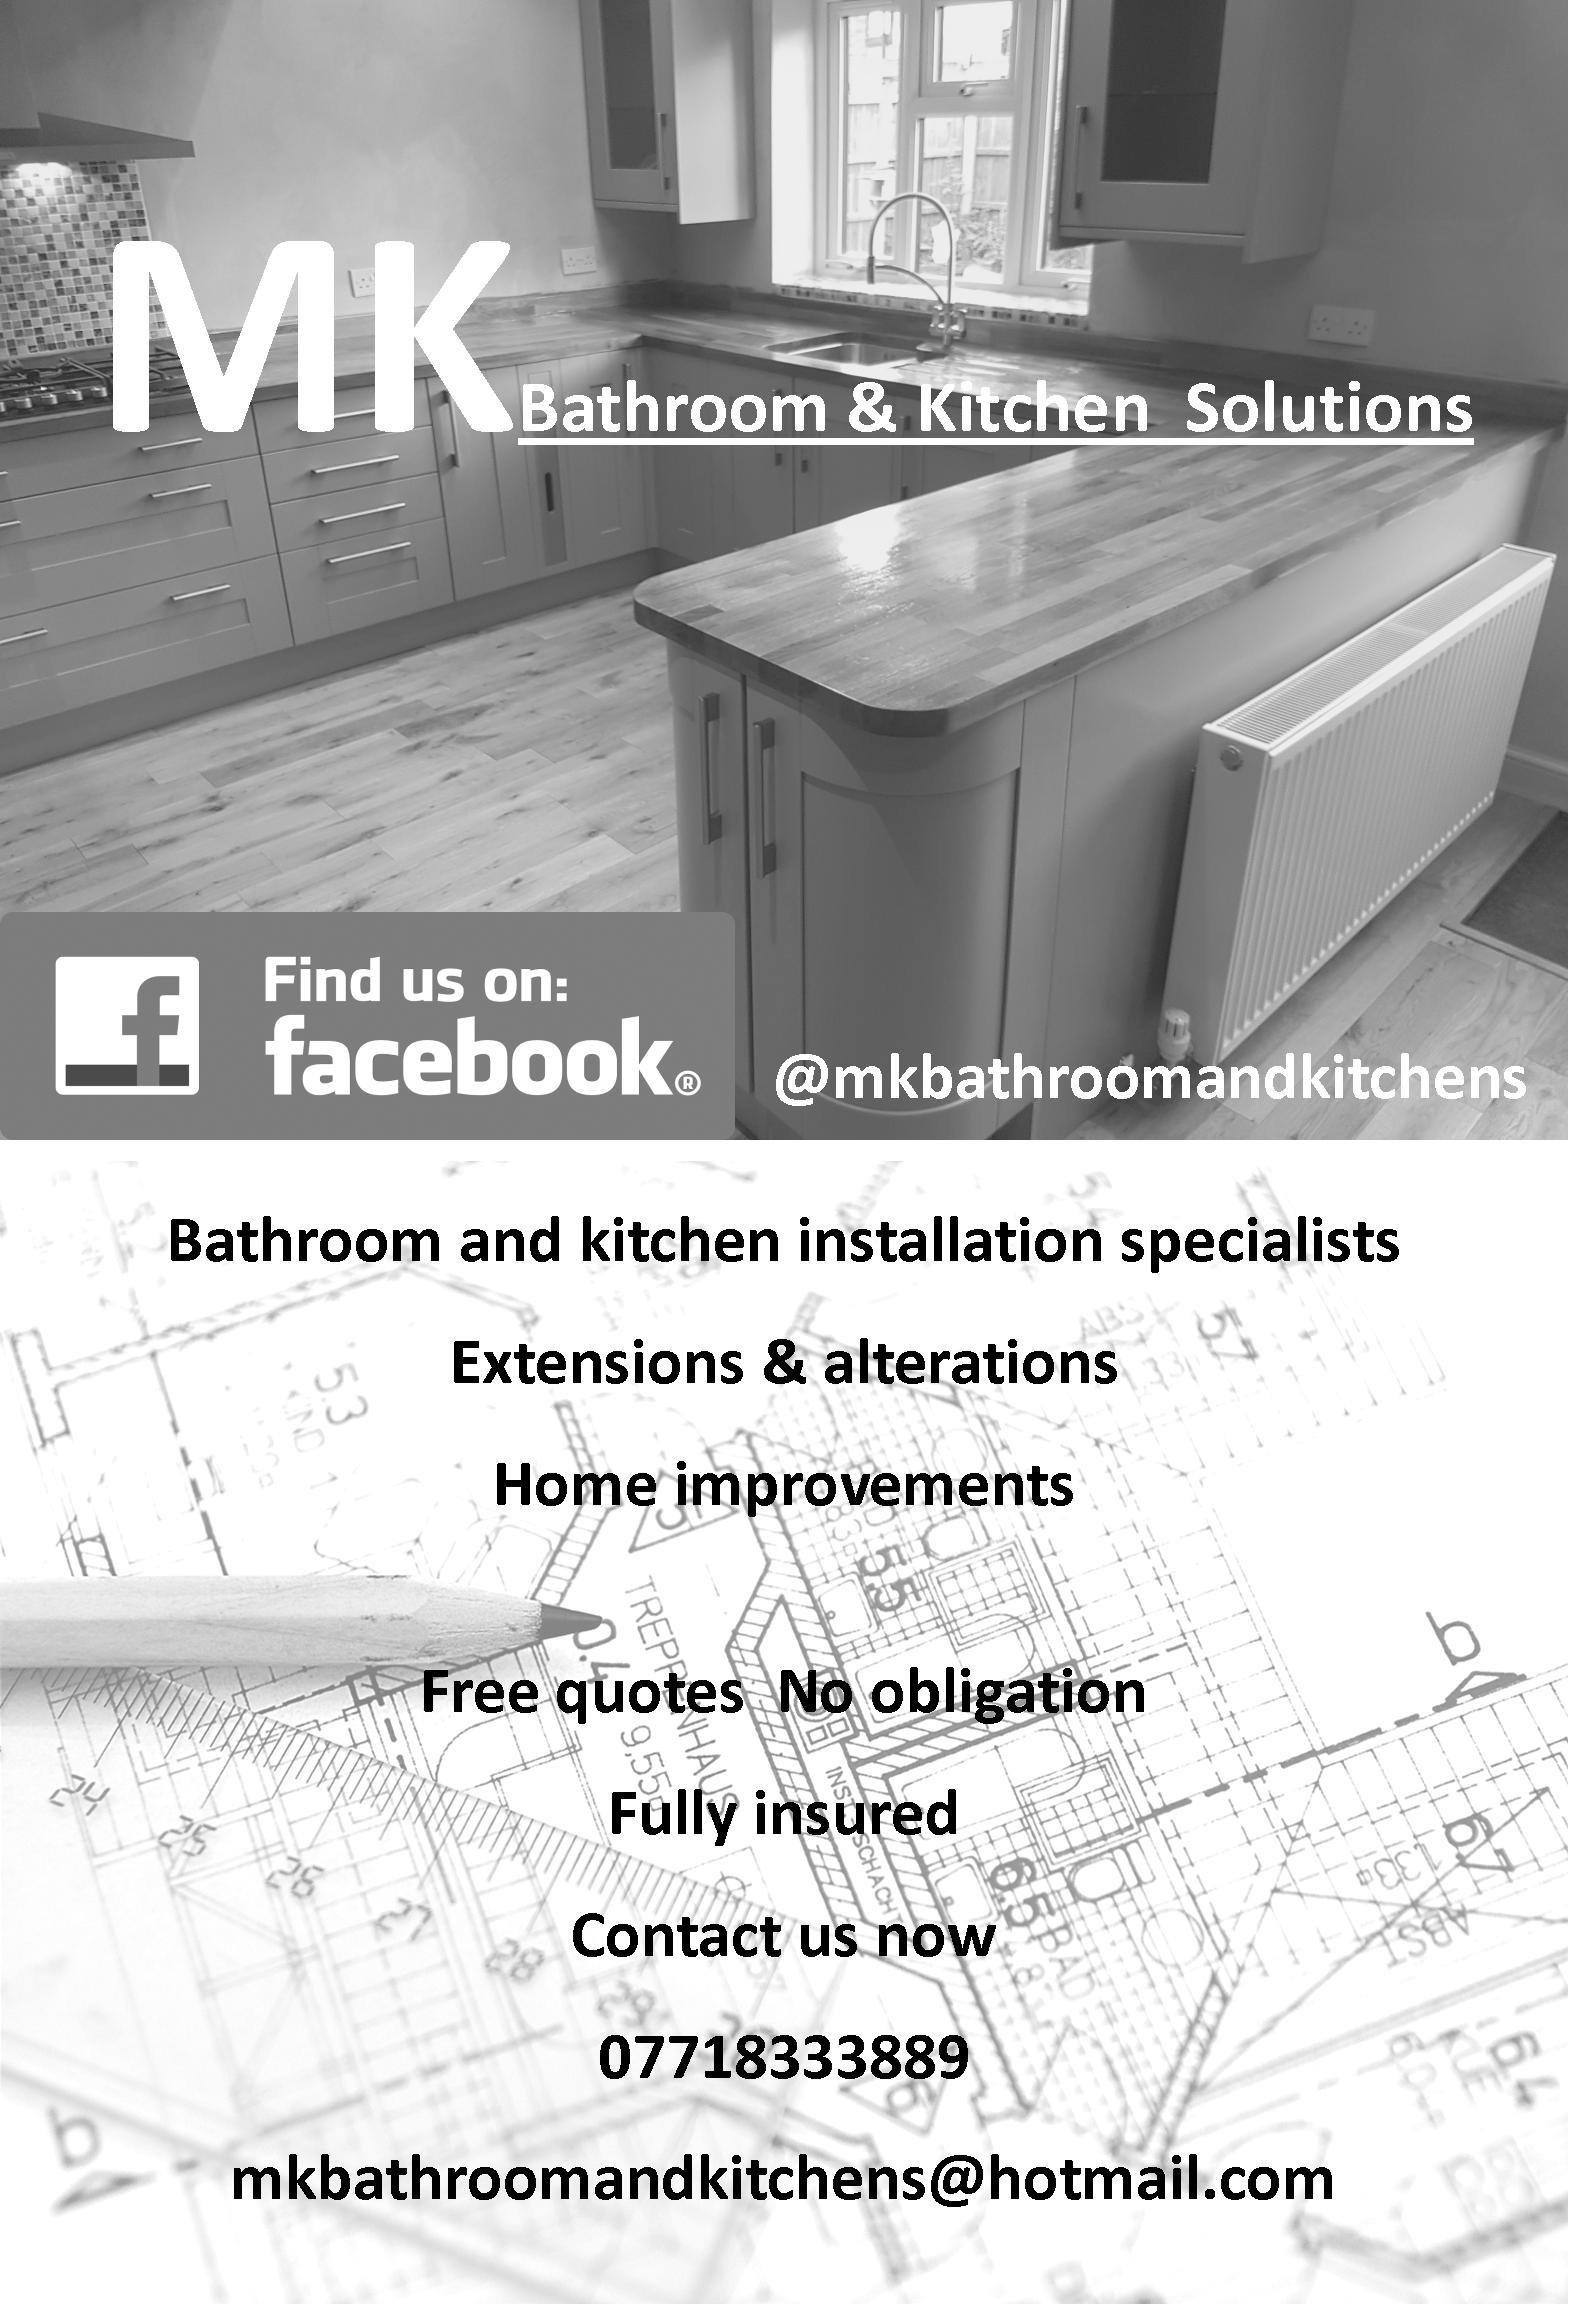 M K Bathrooms & Kitchens Solutions